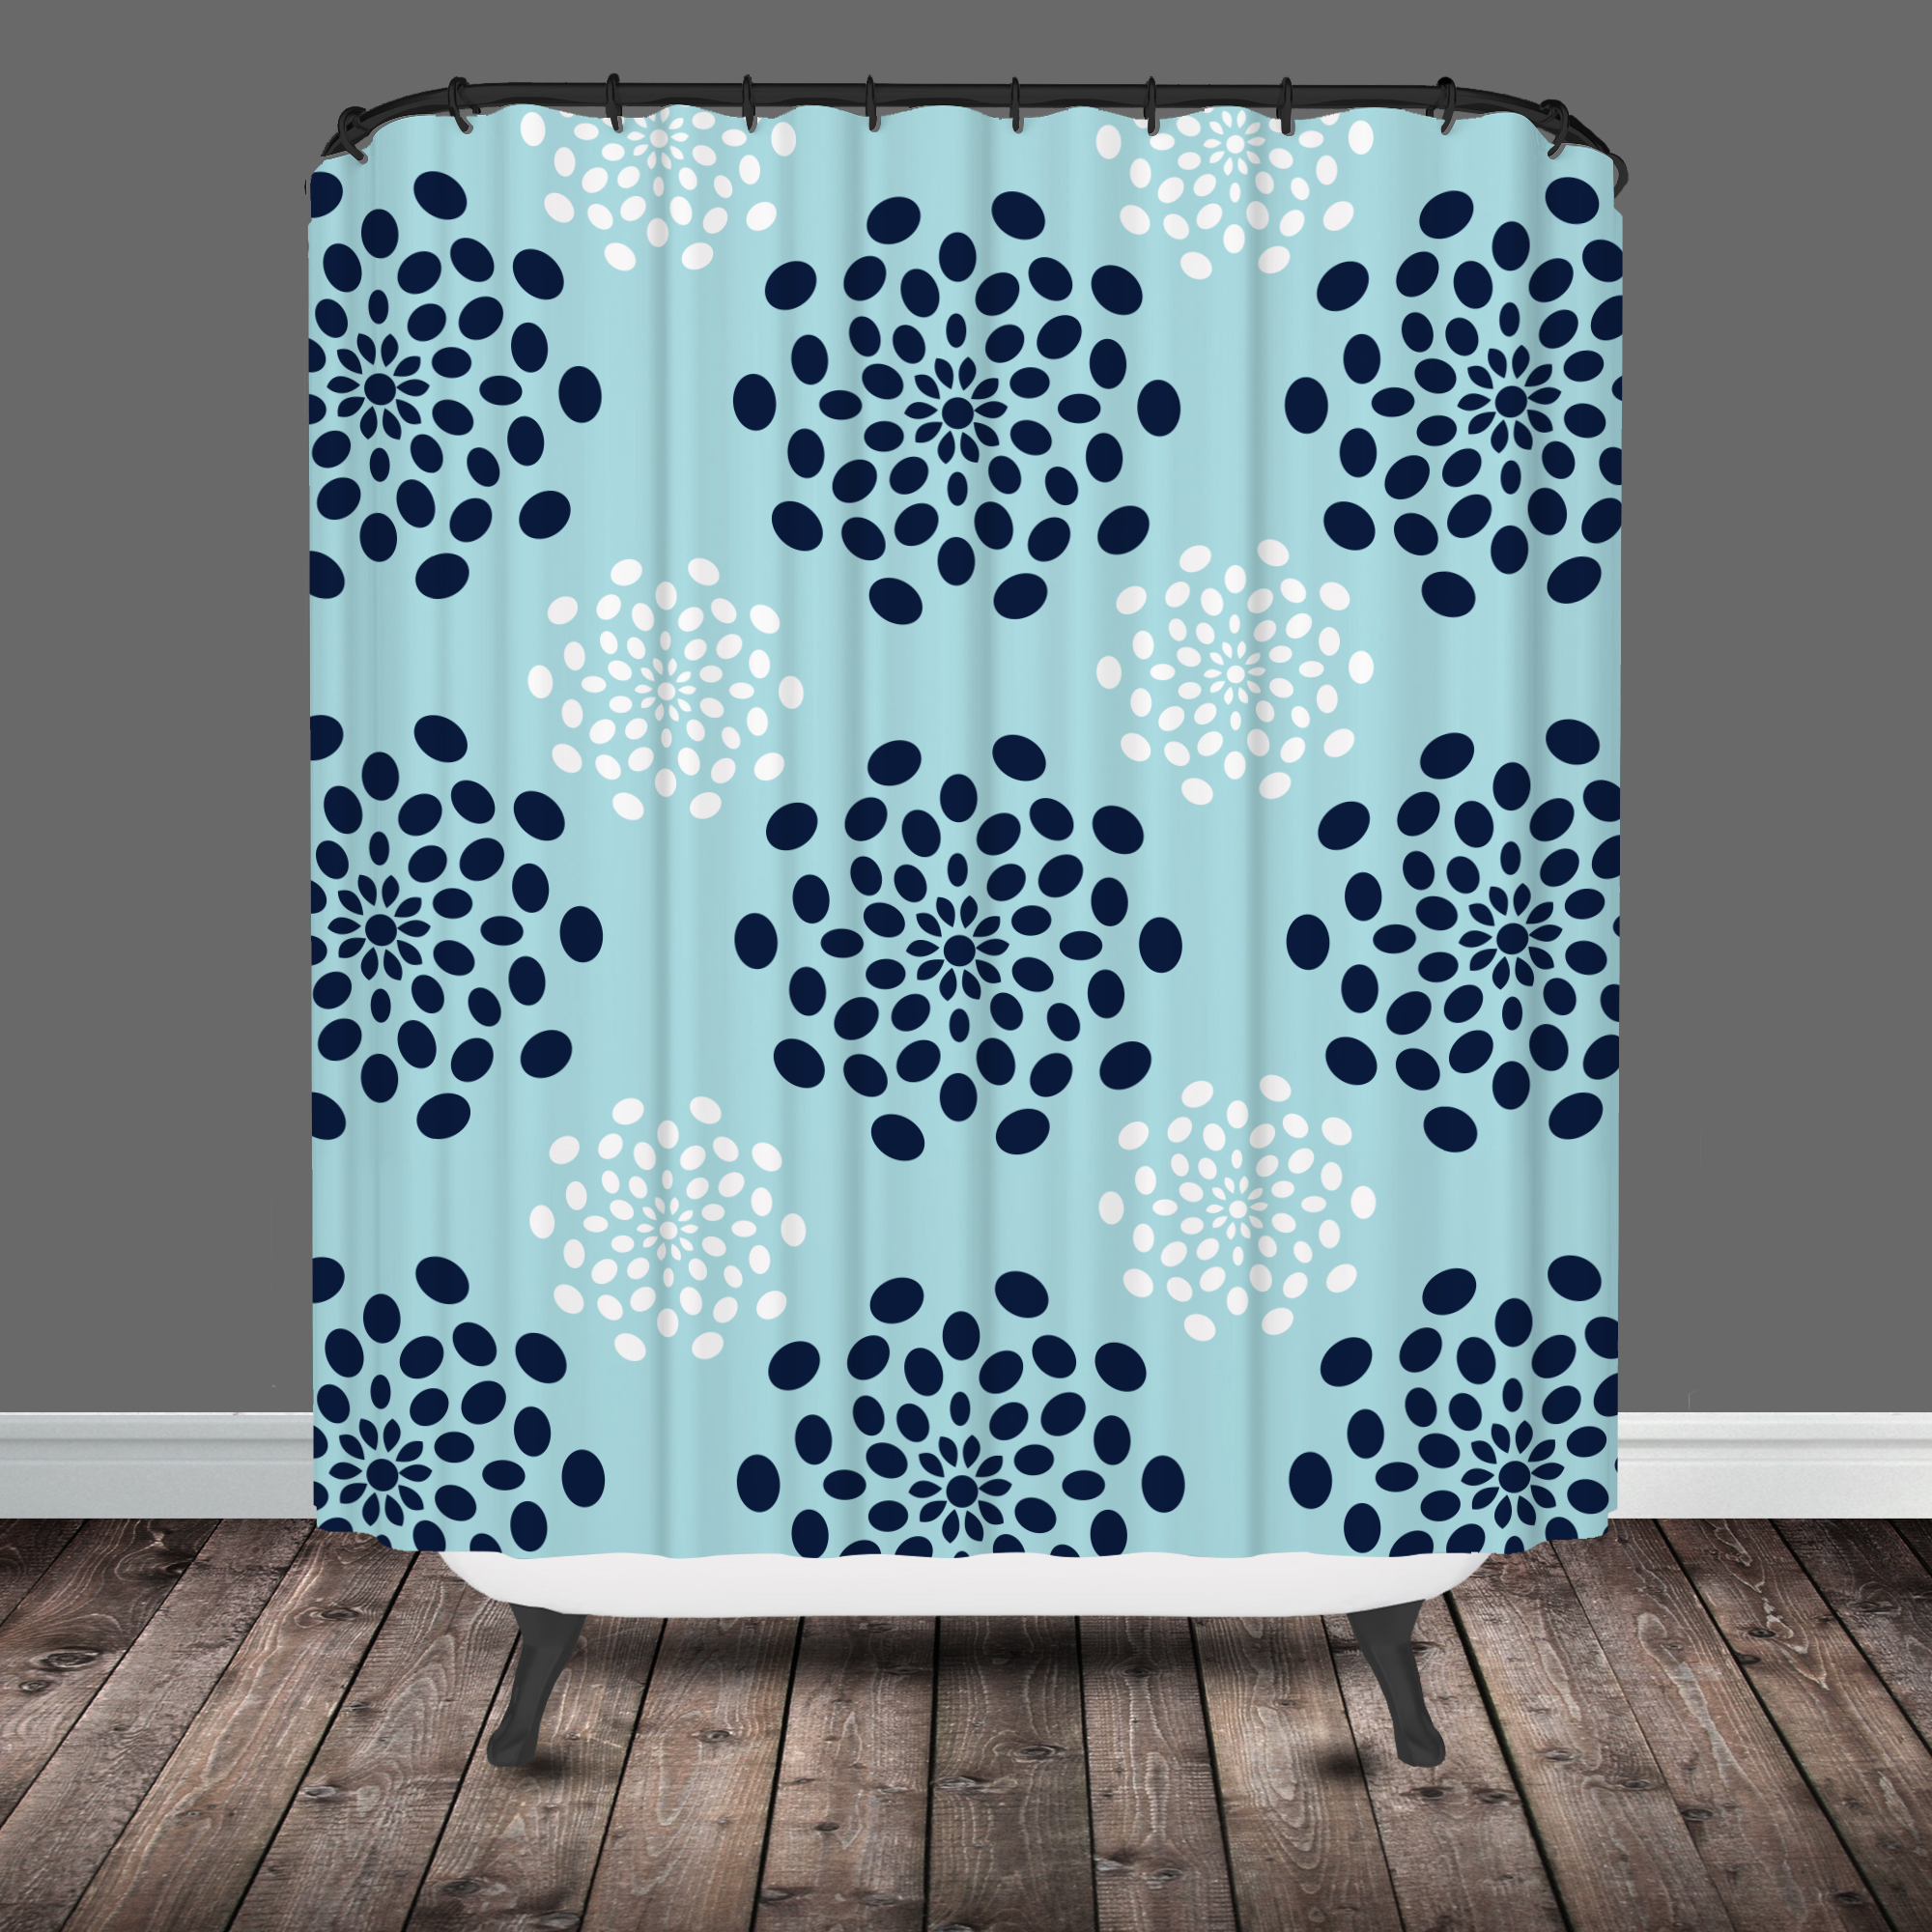 Superb Mod Flower Shower Curtain